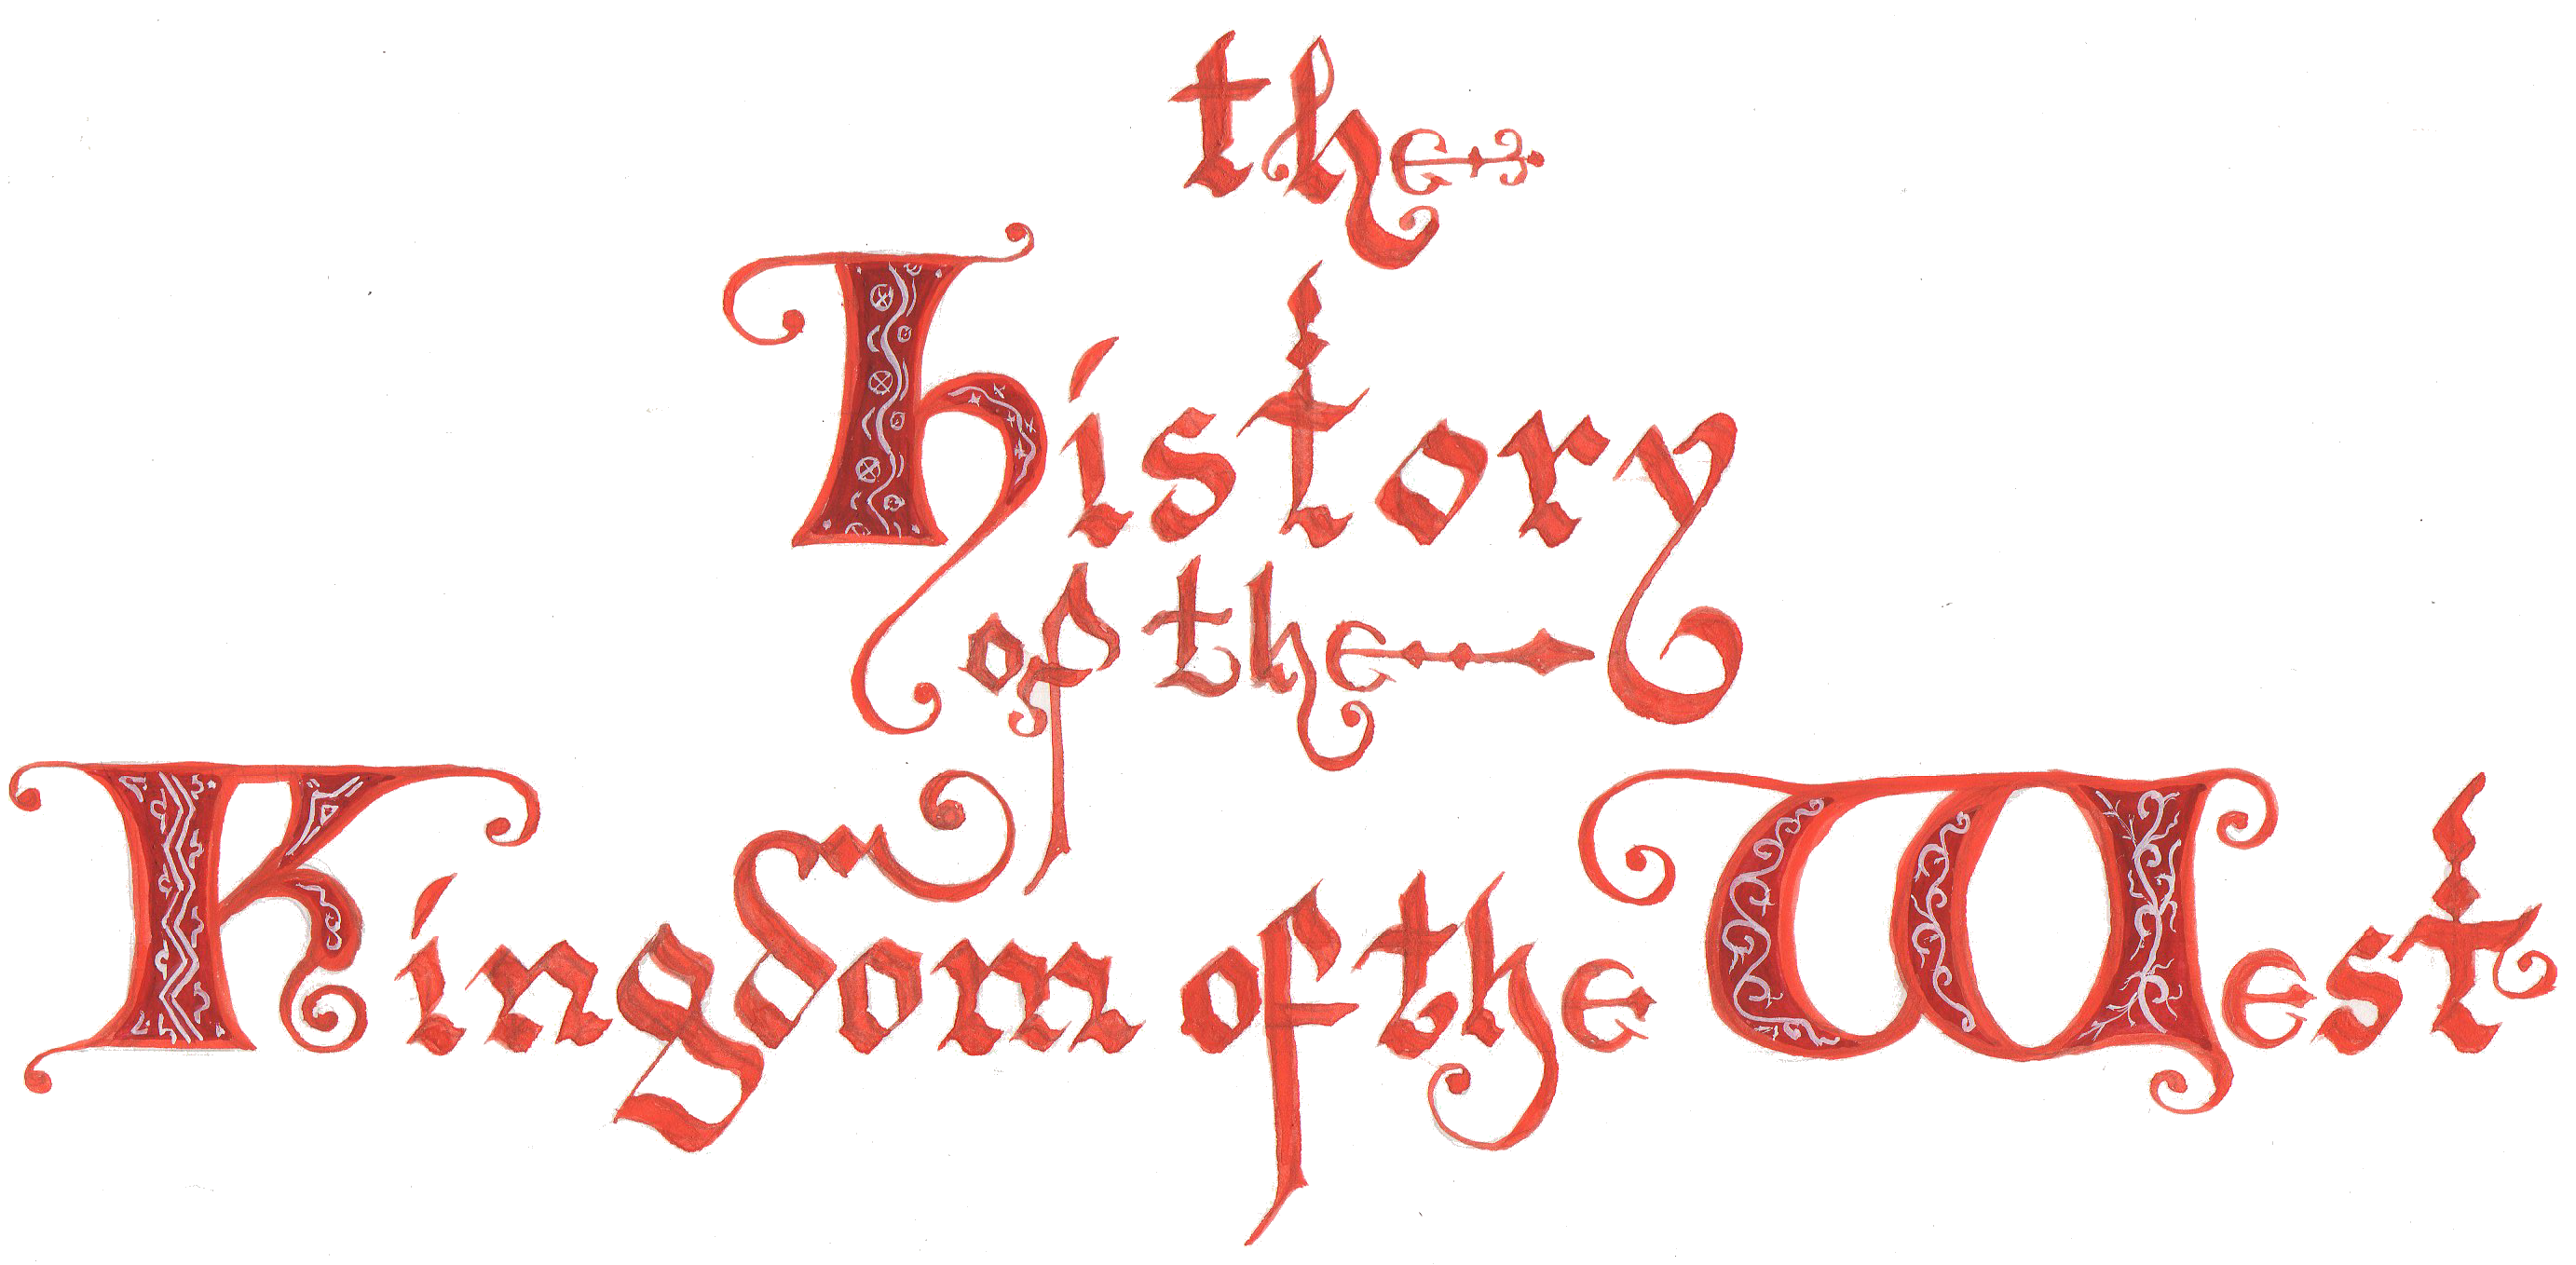 Calligraphy by Robin of Thornwo